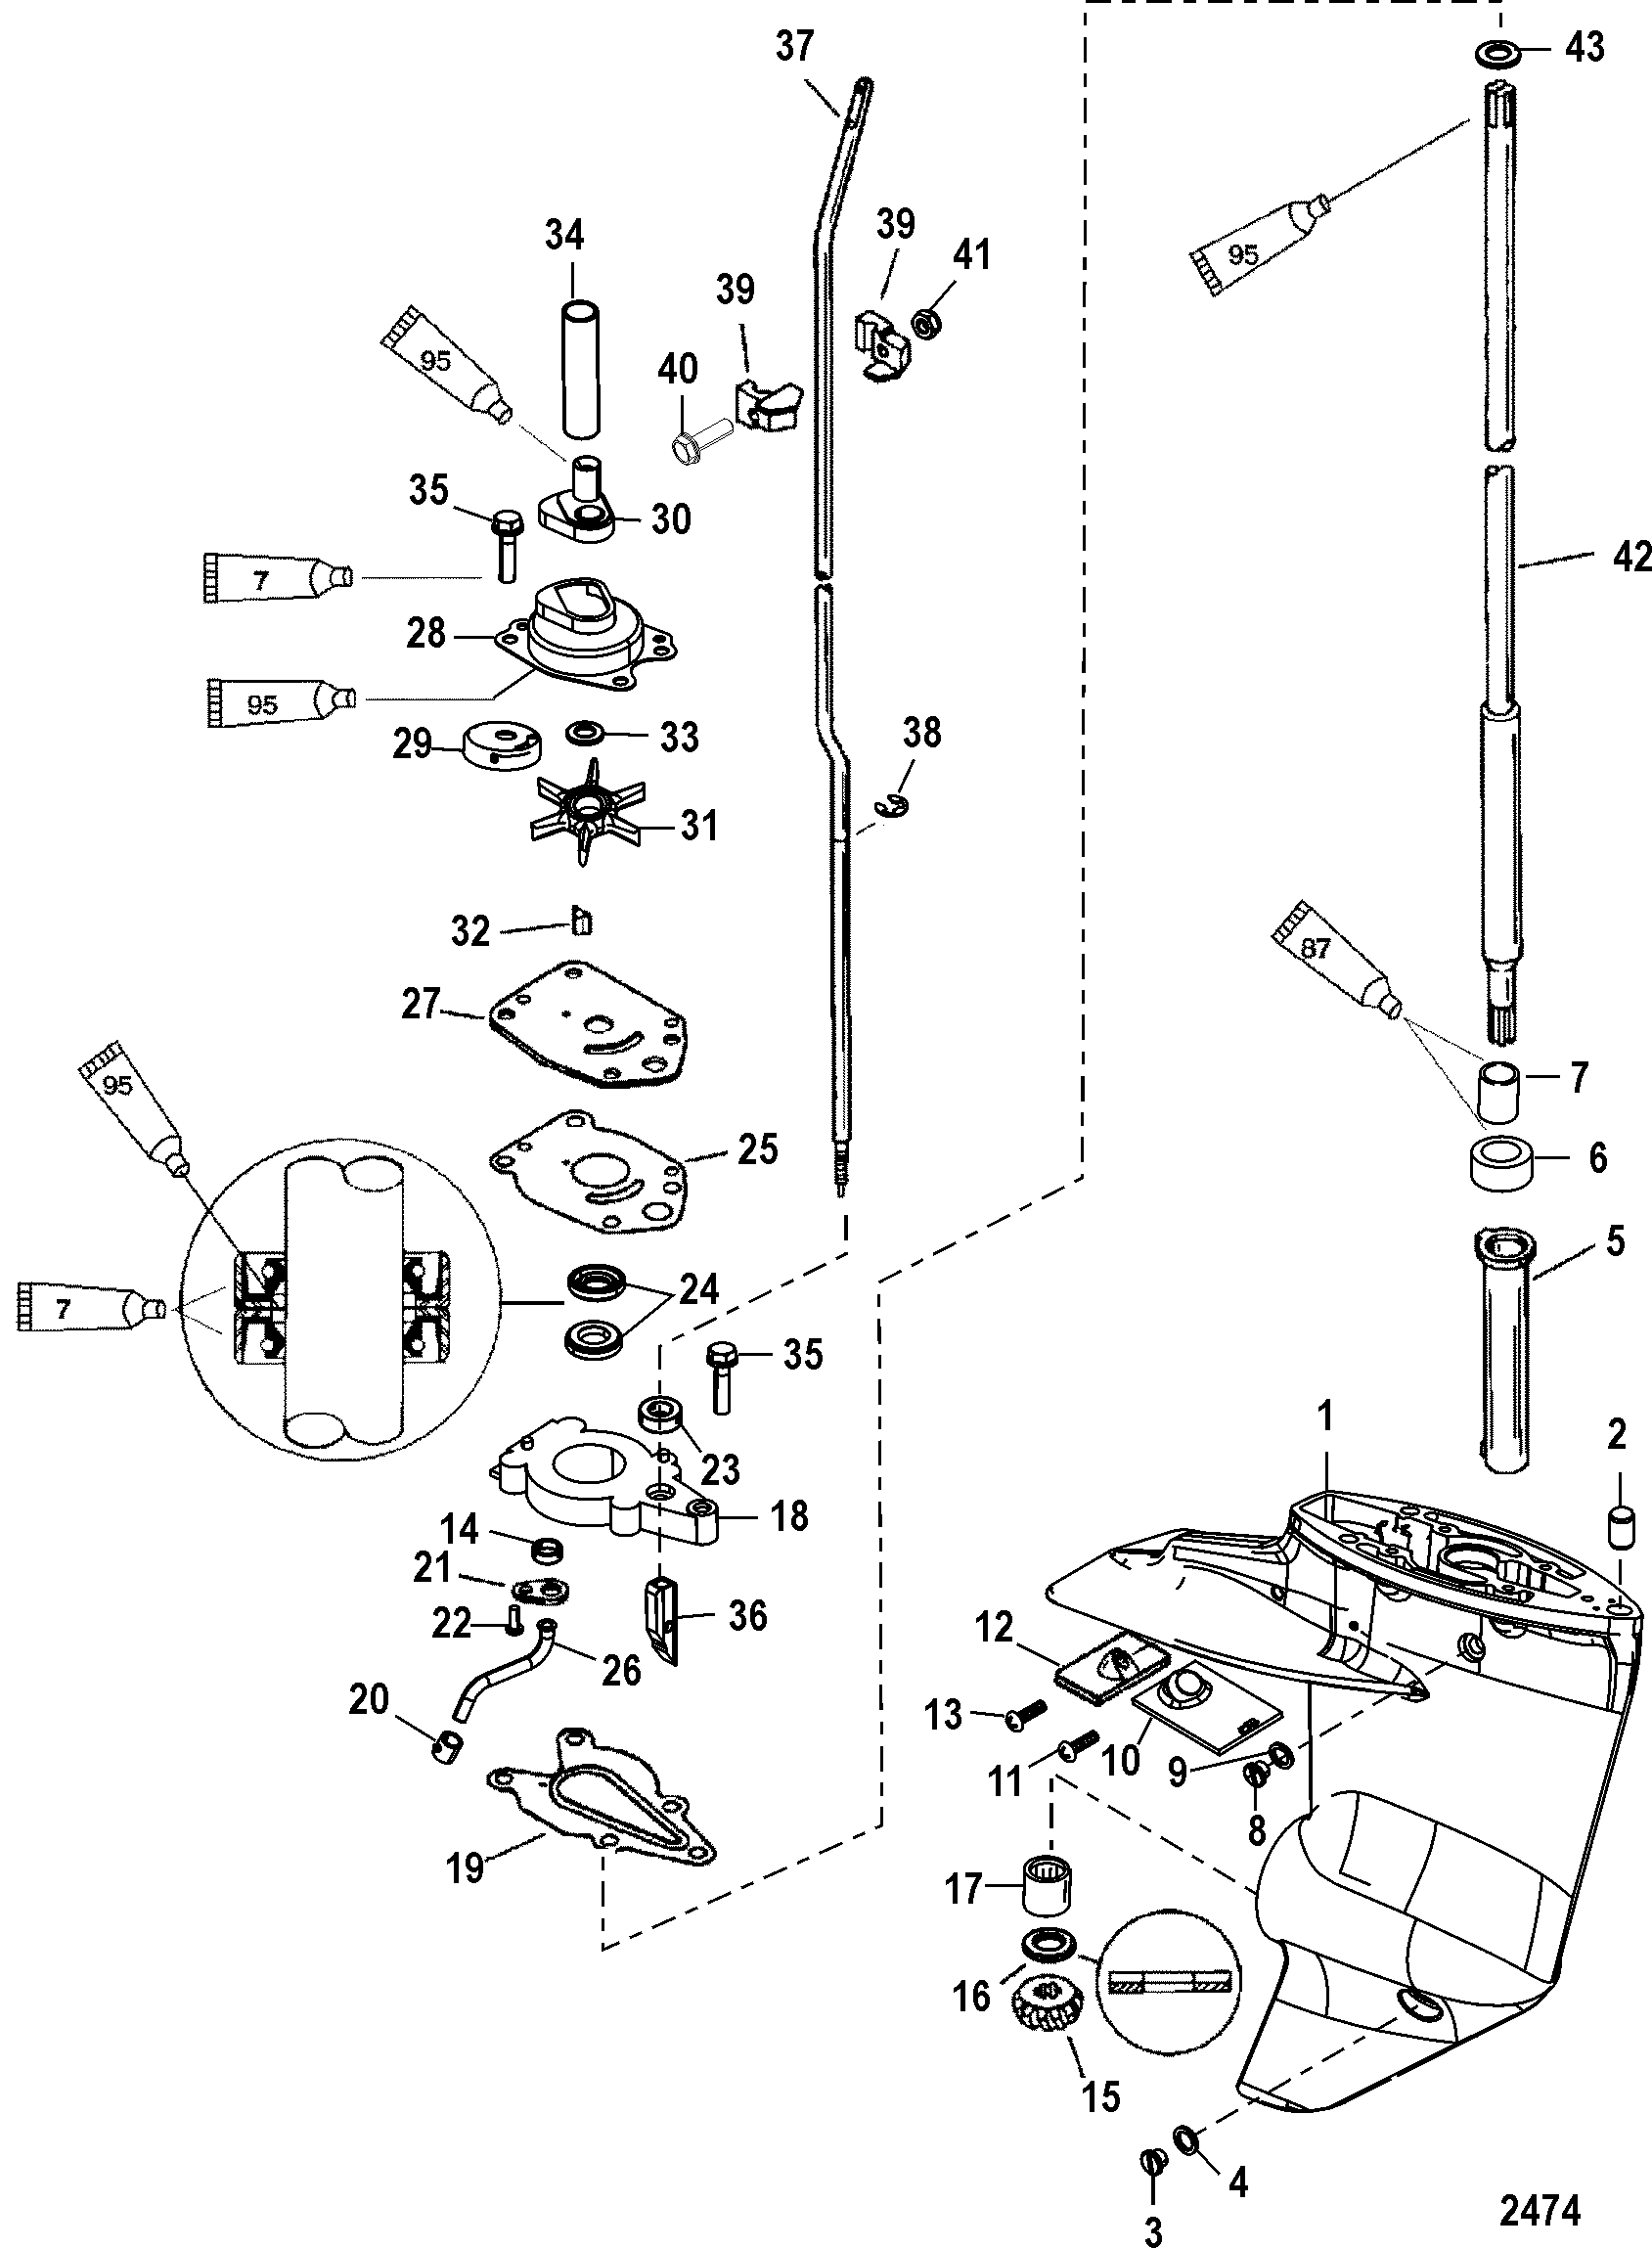 10498808 Post3 additionally Johnson Evinrude Parts together with Johnson Evinrude Parts moreover Show product also Johnson Evinrude Parts. on evinrude fuel pump diagram